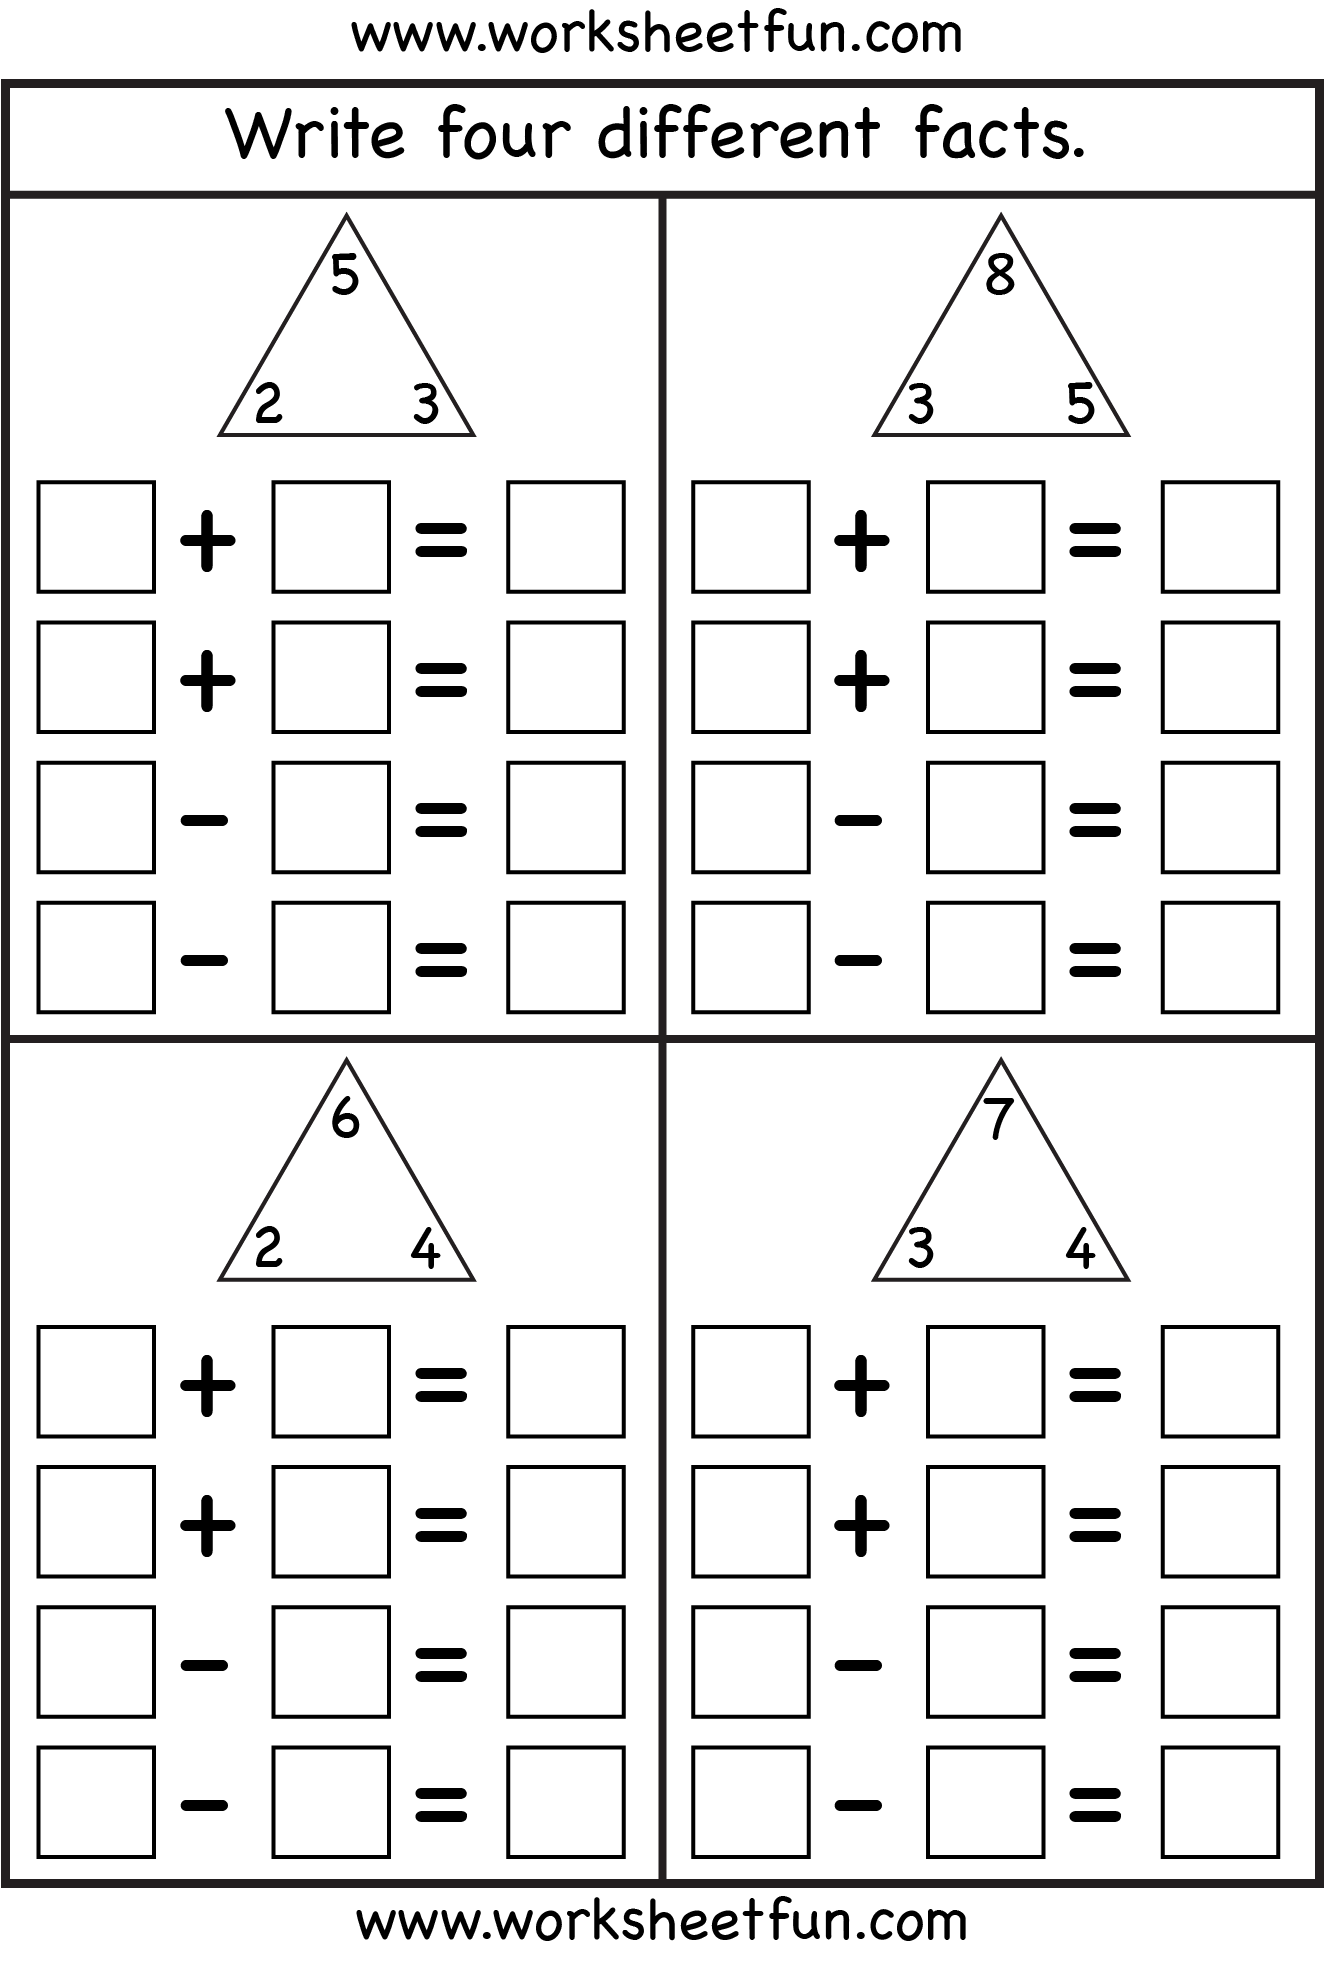 hight resolution of Fact Family – Complete each fact family – 4 Worksheets   Fact family  worksheet